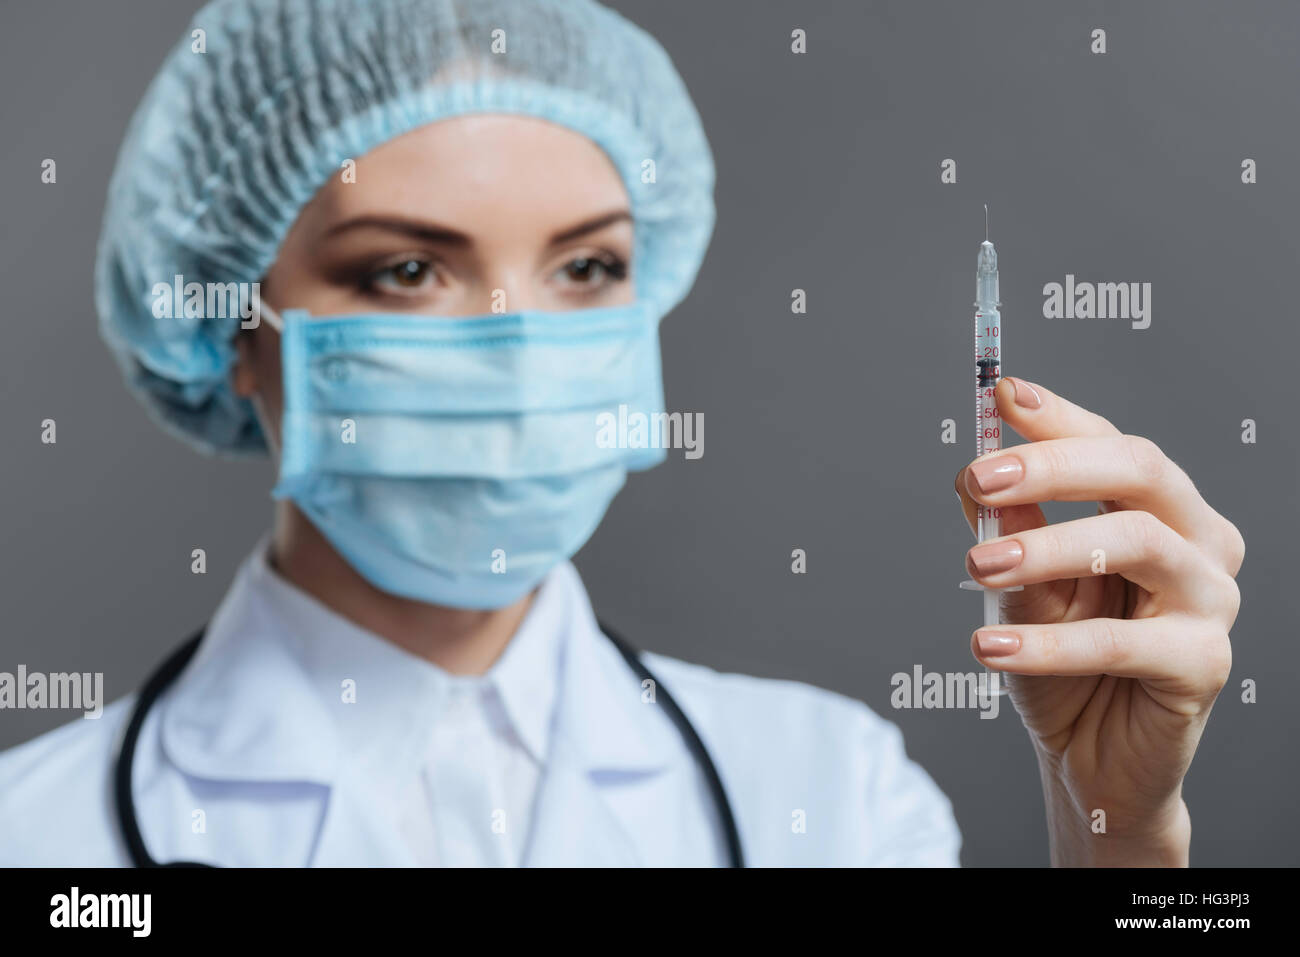 Female doctor preparing to make the injection - Stock Image